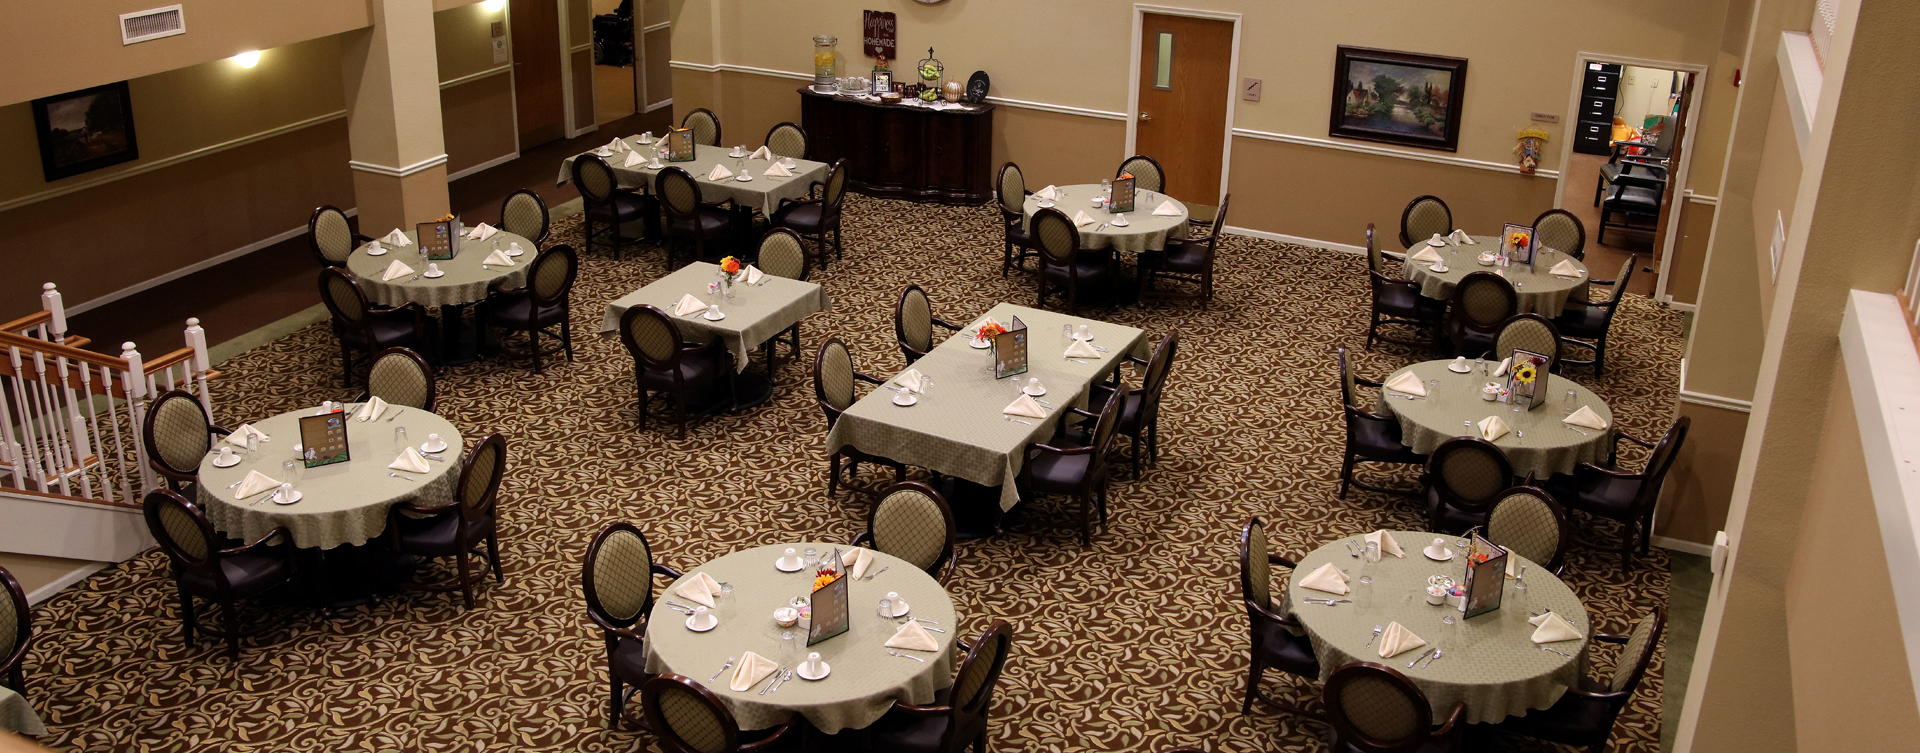 Food is best when shared with friends in the dining room at Bickford of Rockford